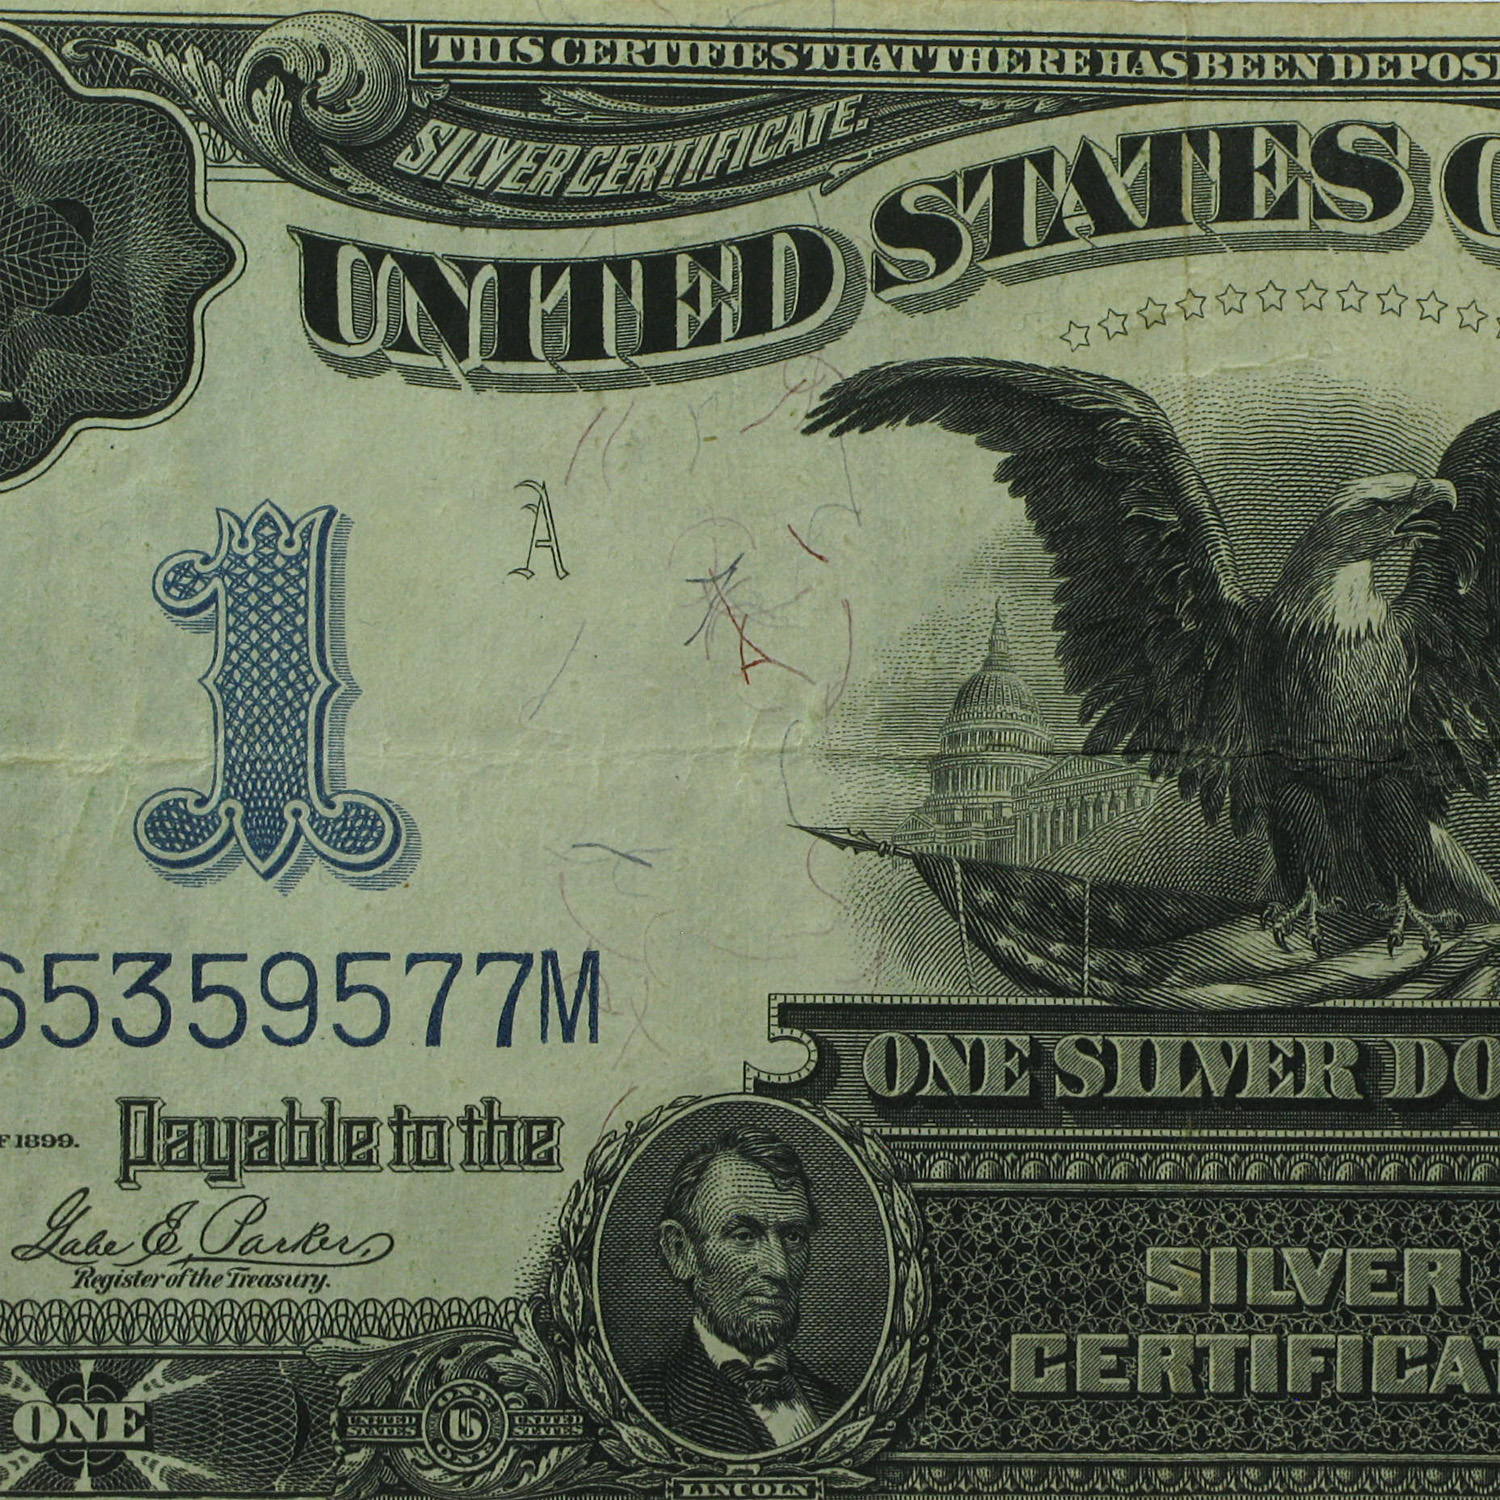 1899 $1.00 Silver Certificate Black Eagle (Very Fine)